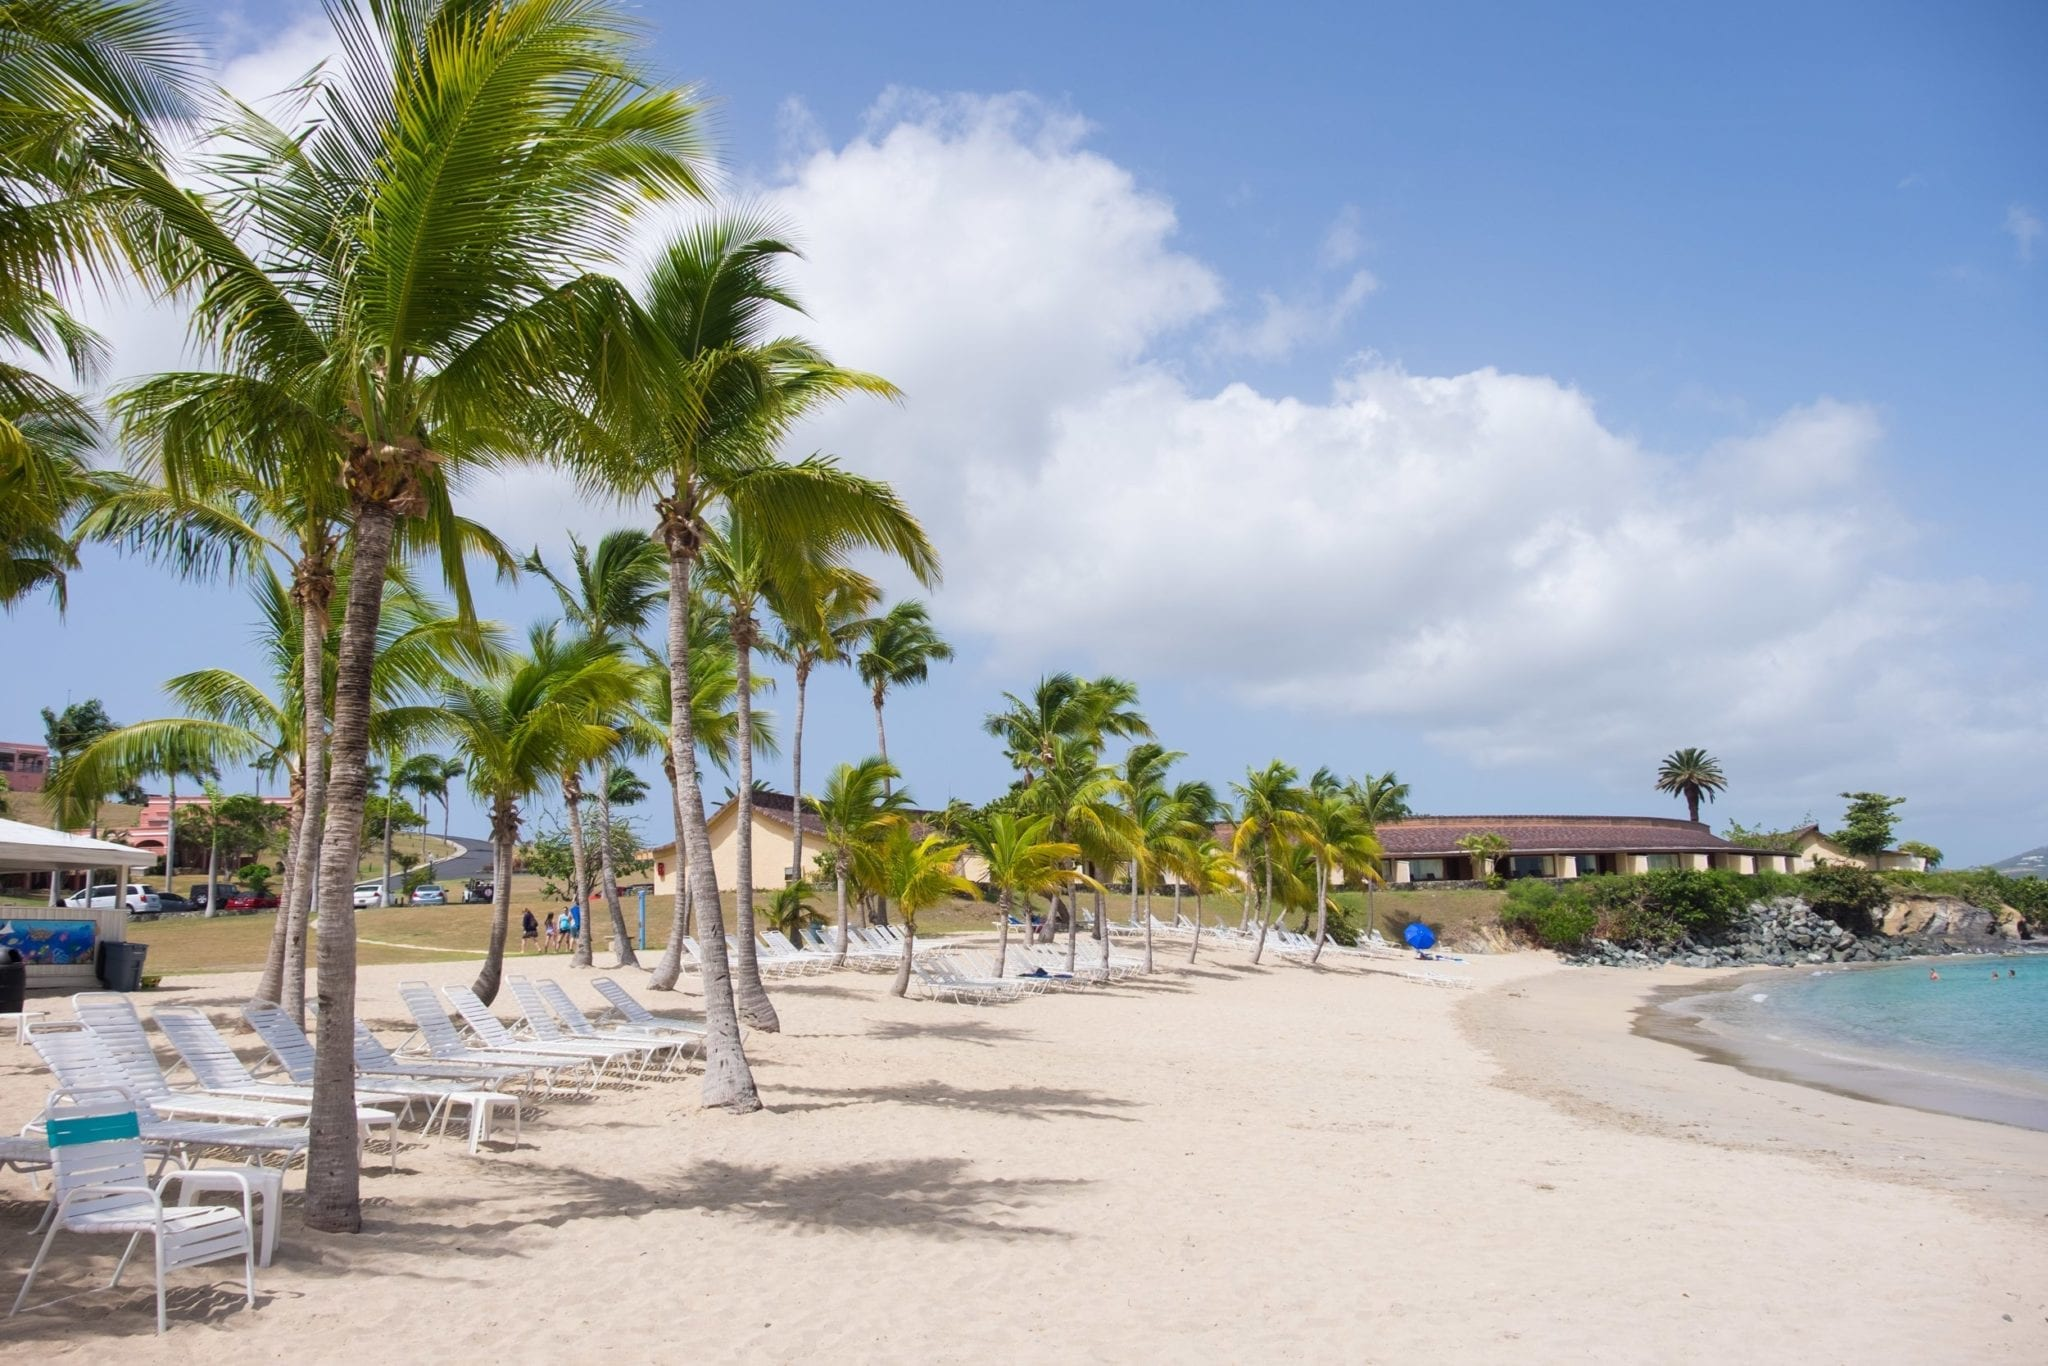 A Weekend Getaway To St Croix With Spirit Airlines Adventurous Mainly Serve As But Would Appreciate More Experienced I Loved Our Water View Rooms There Were Three Beaches Breakfast Was Pretty Good Ate Their Caribbean Spiced Oatmeal Every Day Also Appreciated That